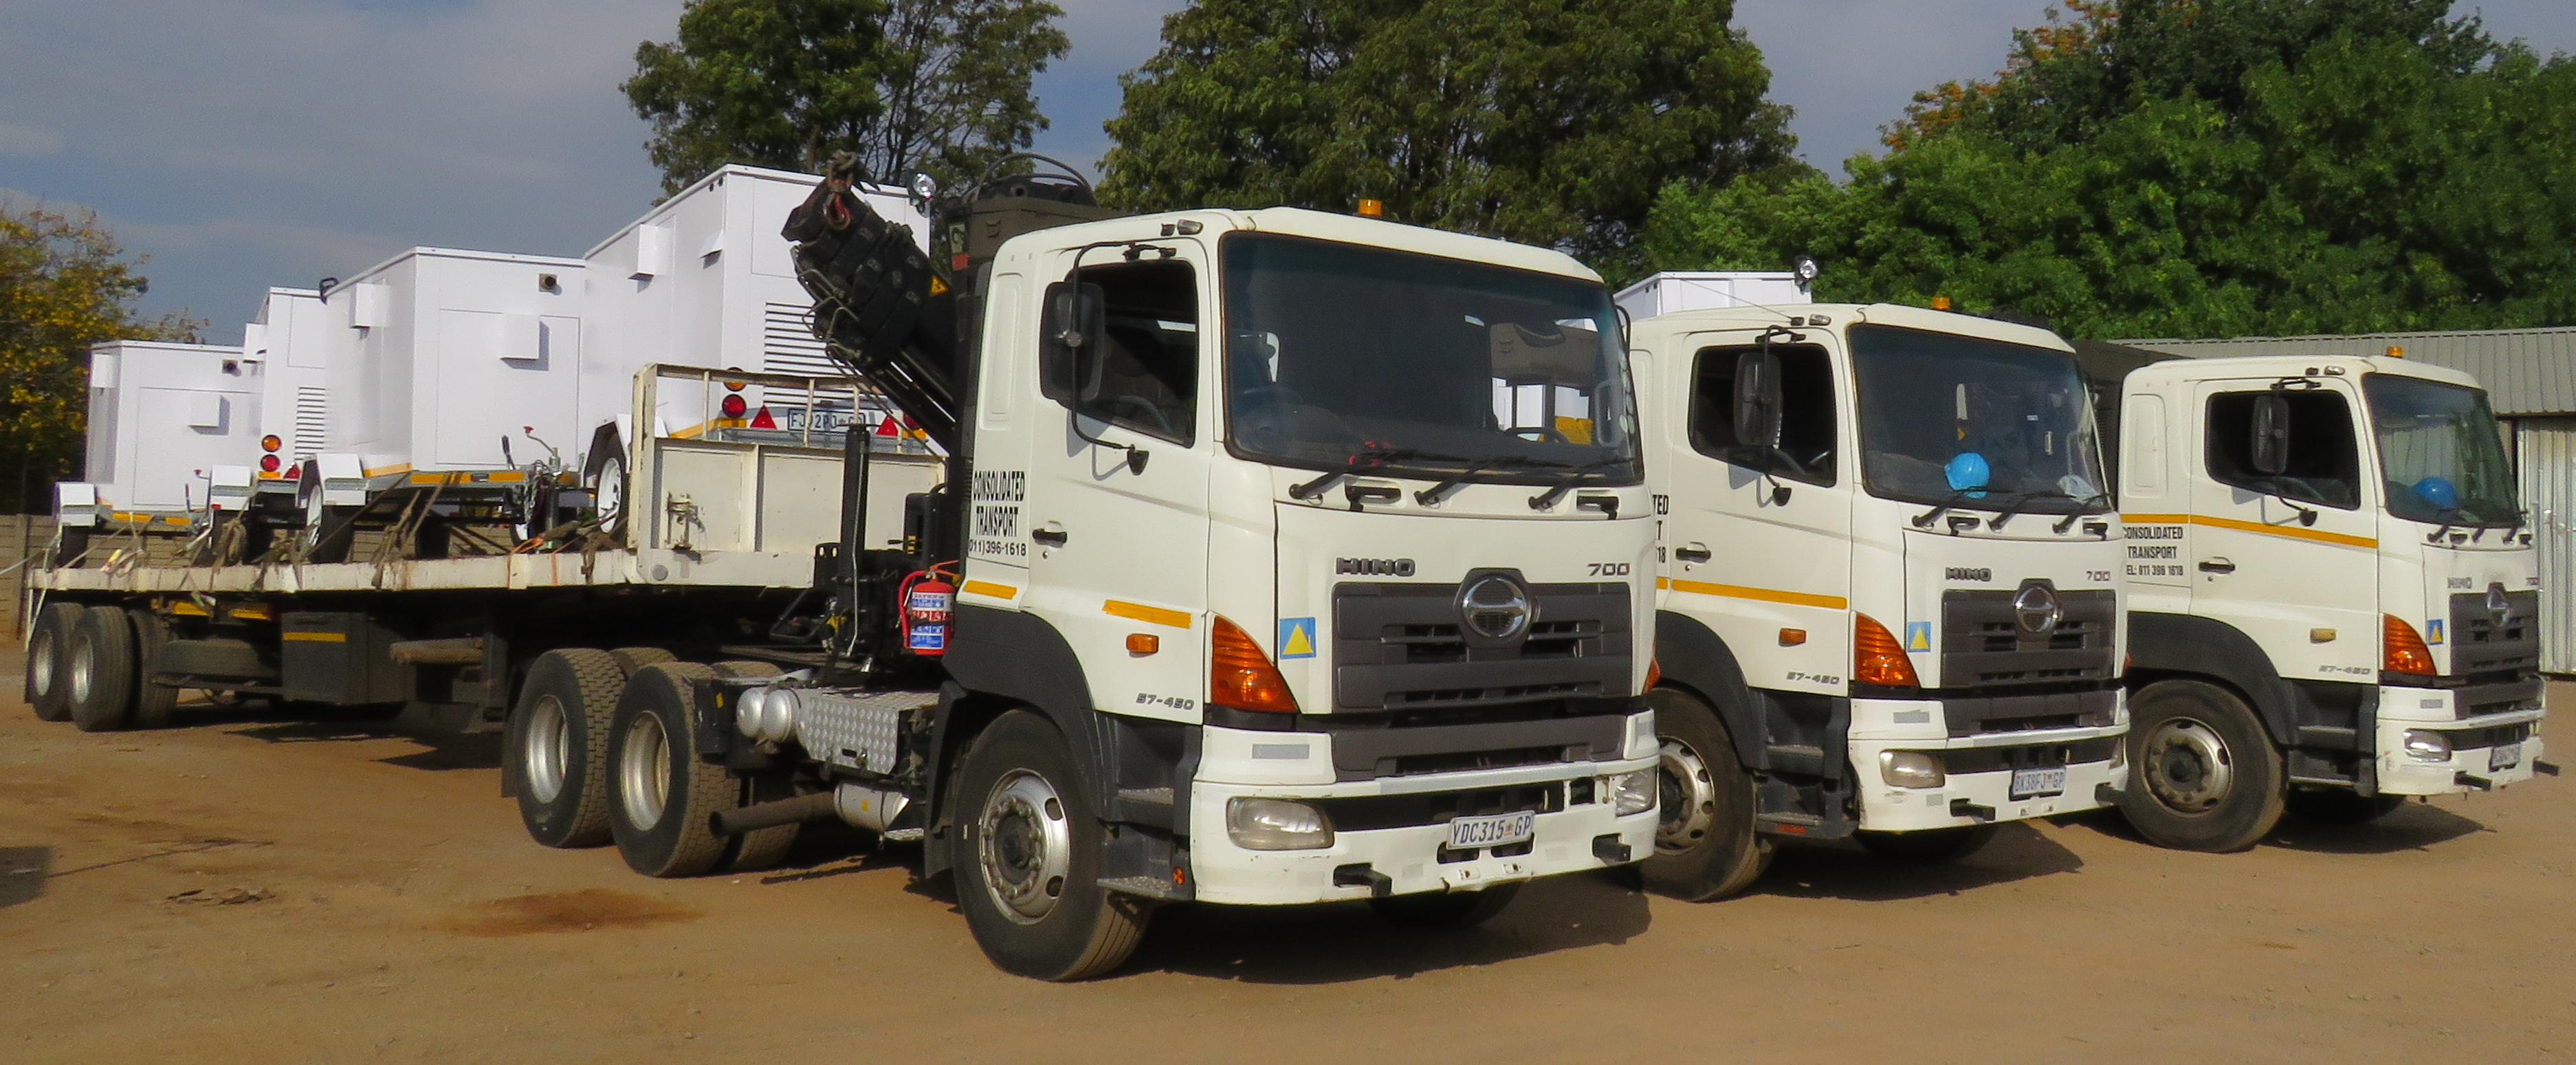 COMPLEX NATURE OF SA TRANSPORT INDUSTRY PROVIDES NICHE MARKETS FOR INNOVATIVE TRUCK OPERATORS